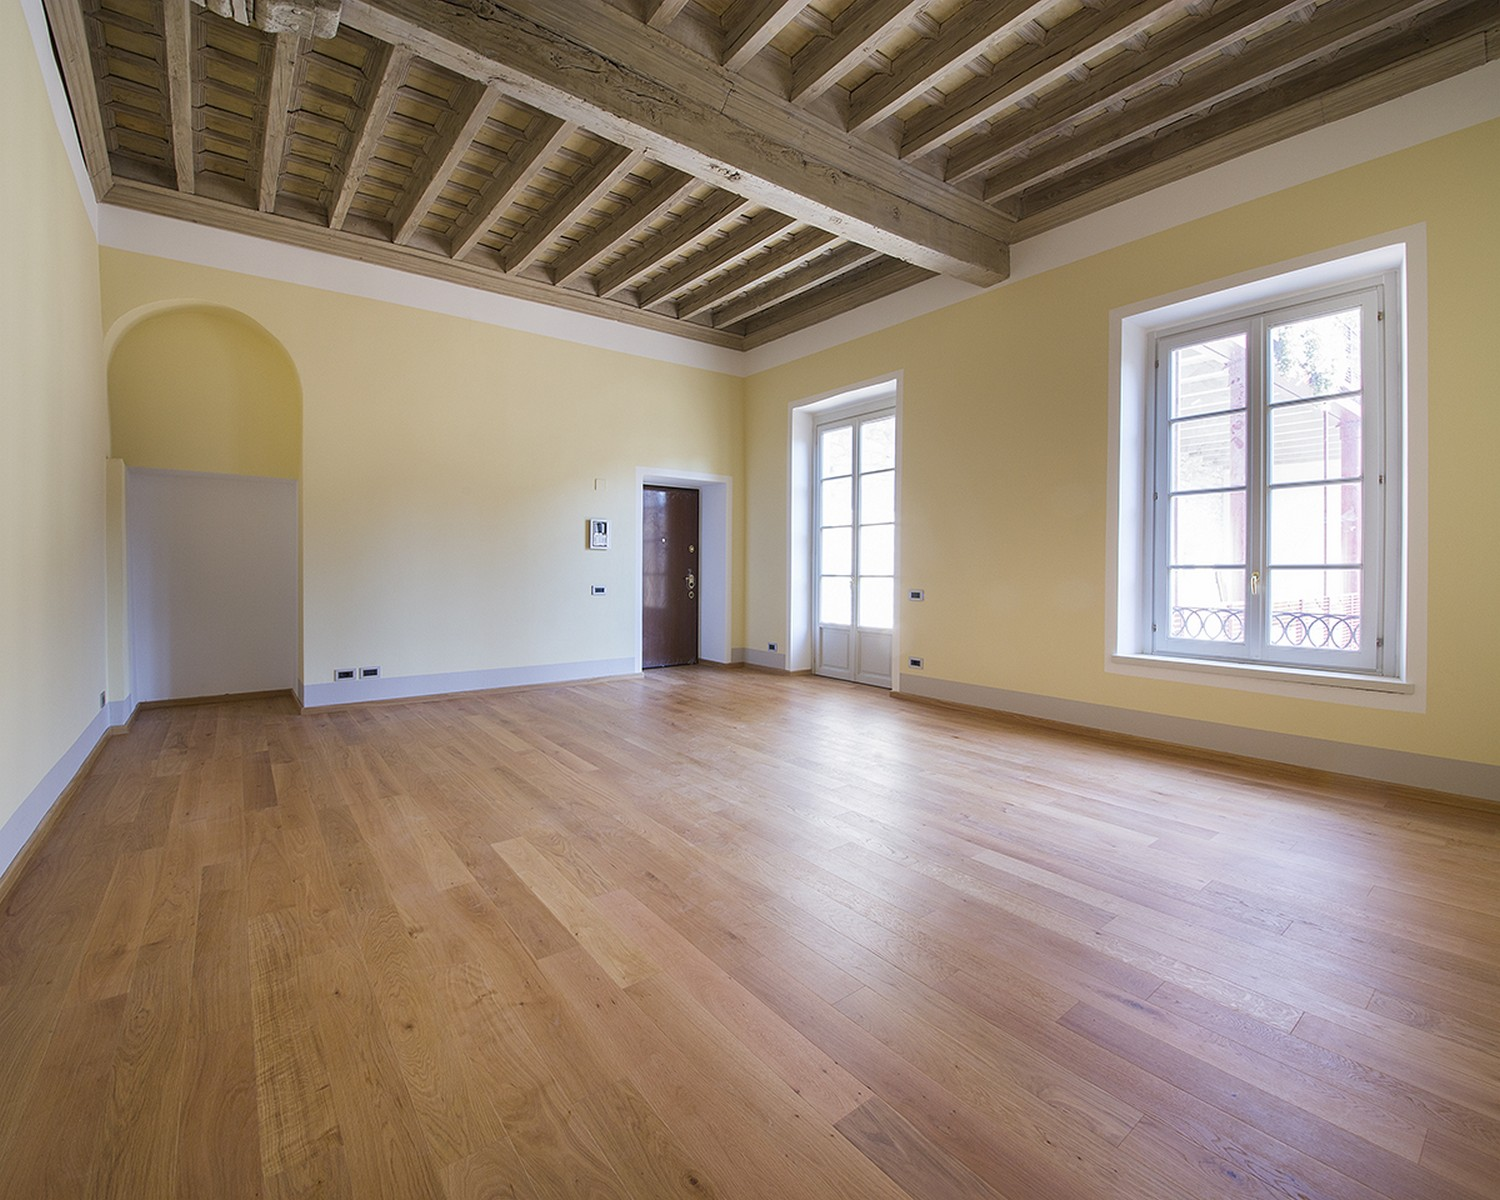 Apartamento por un Venta en Finely renovated apartment in the historic center of Como Via Cinque Giornate Como, Como 22100 Italia